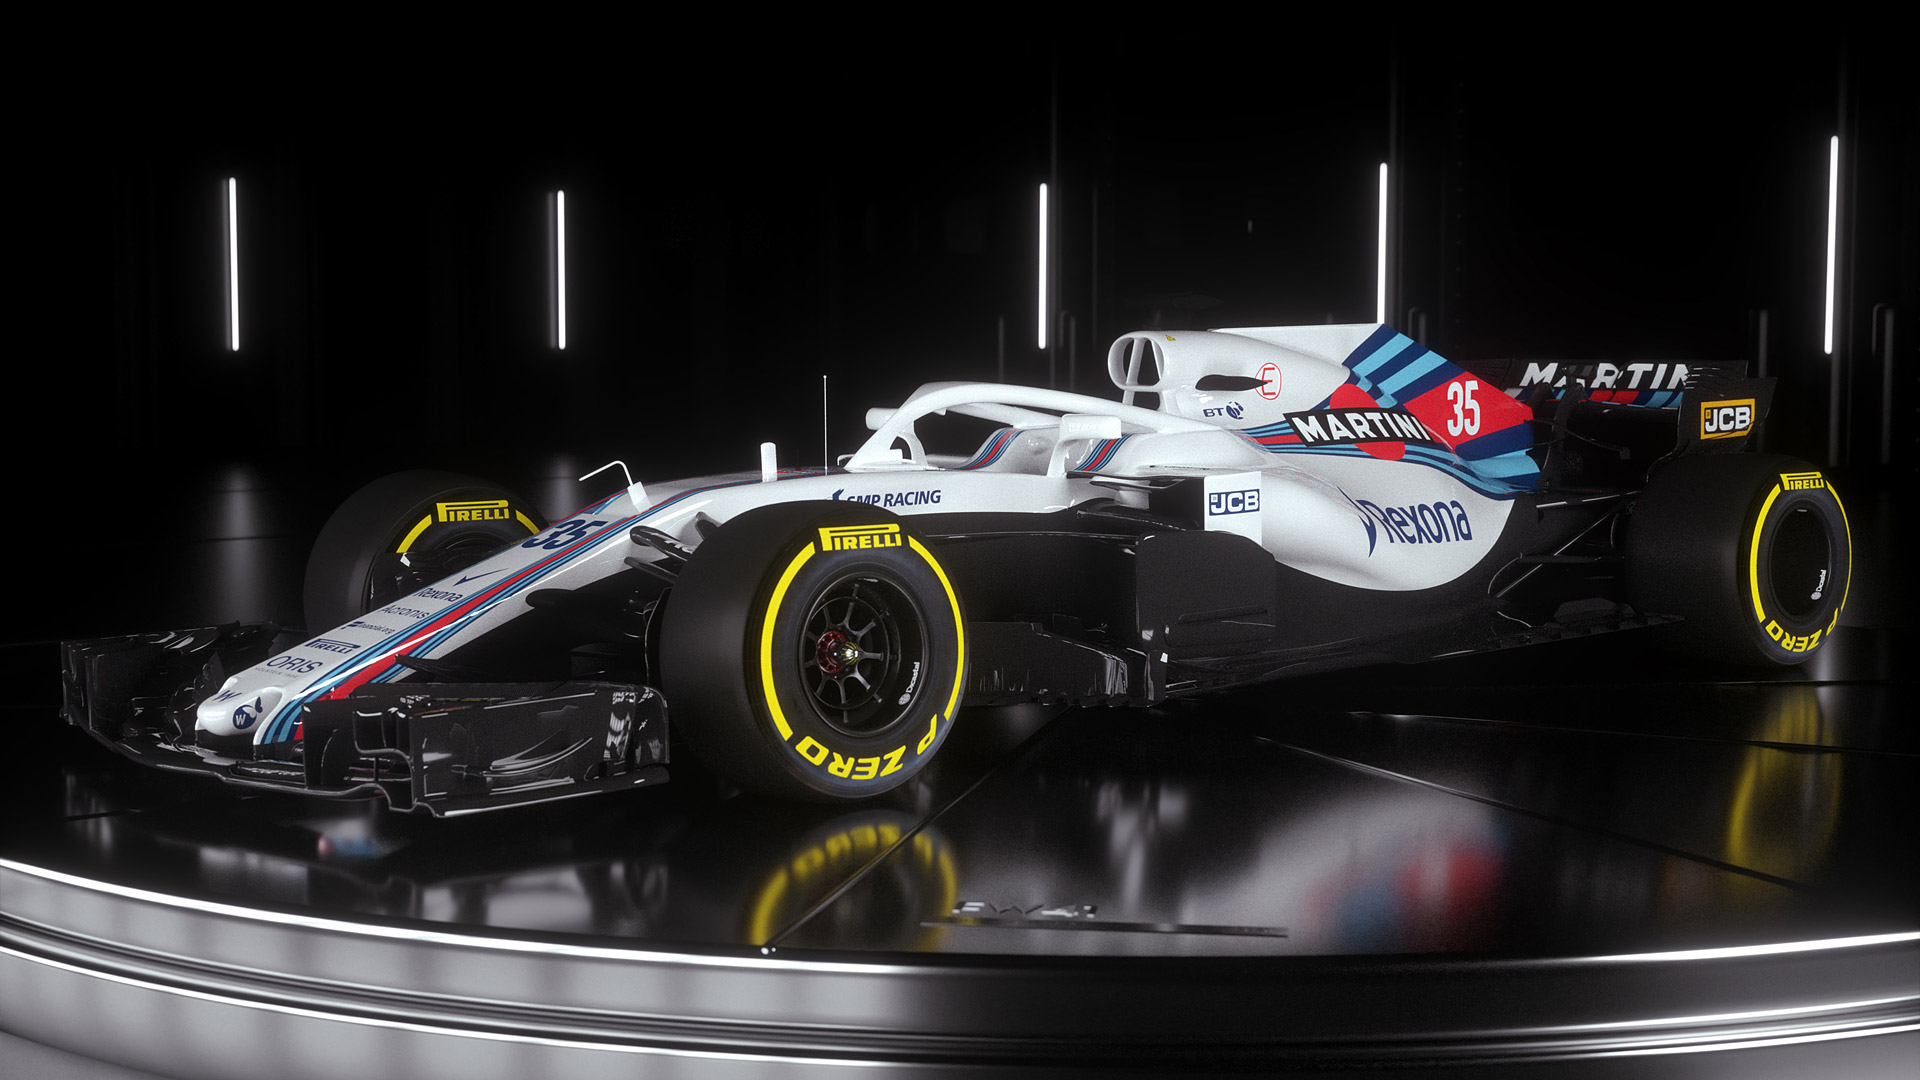 2018 Williams FW41 Wallpapers HD Images   WSupercars 1920x1080